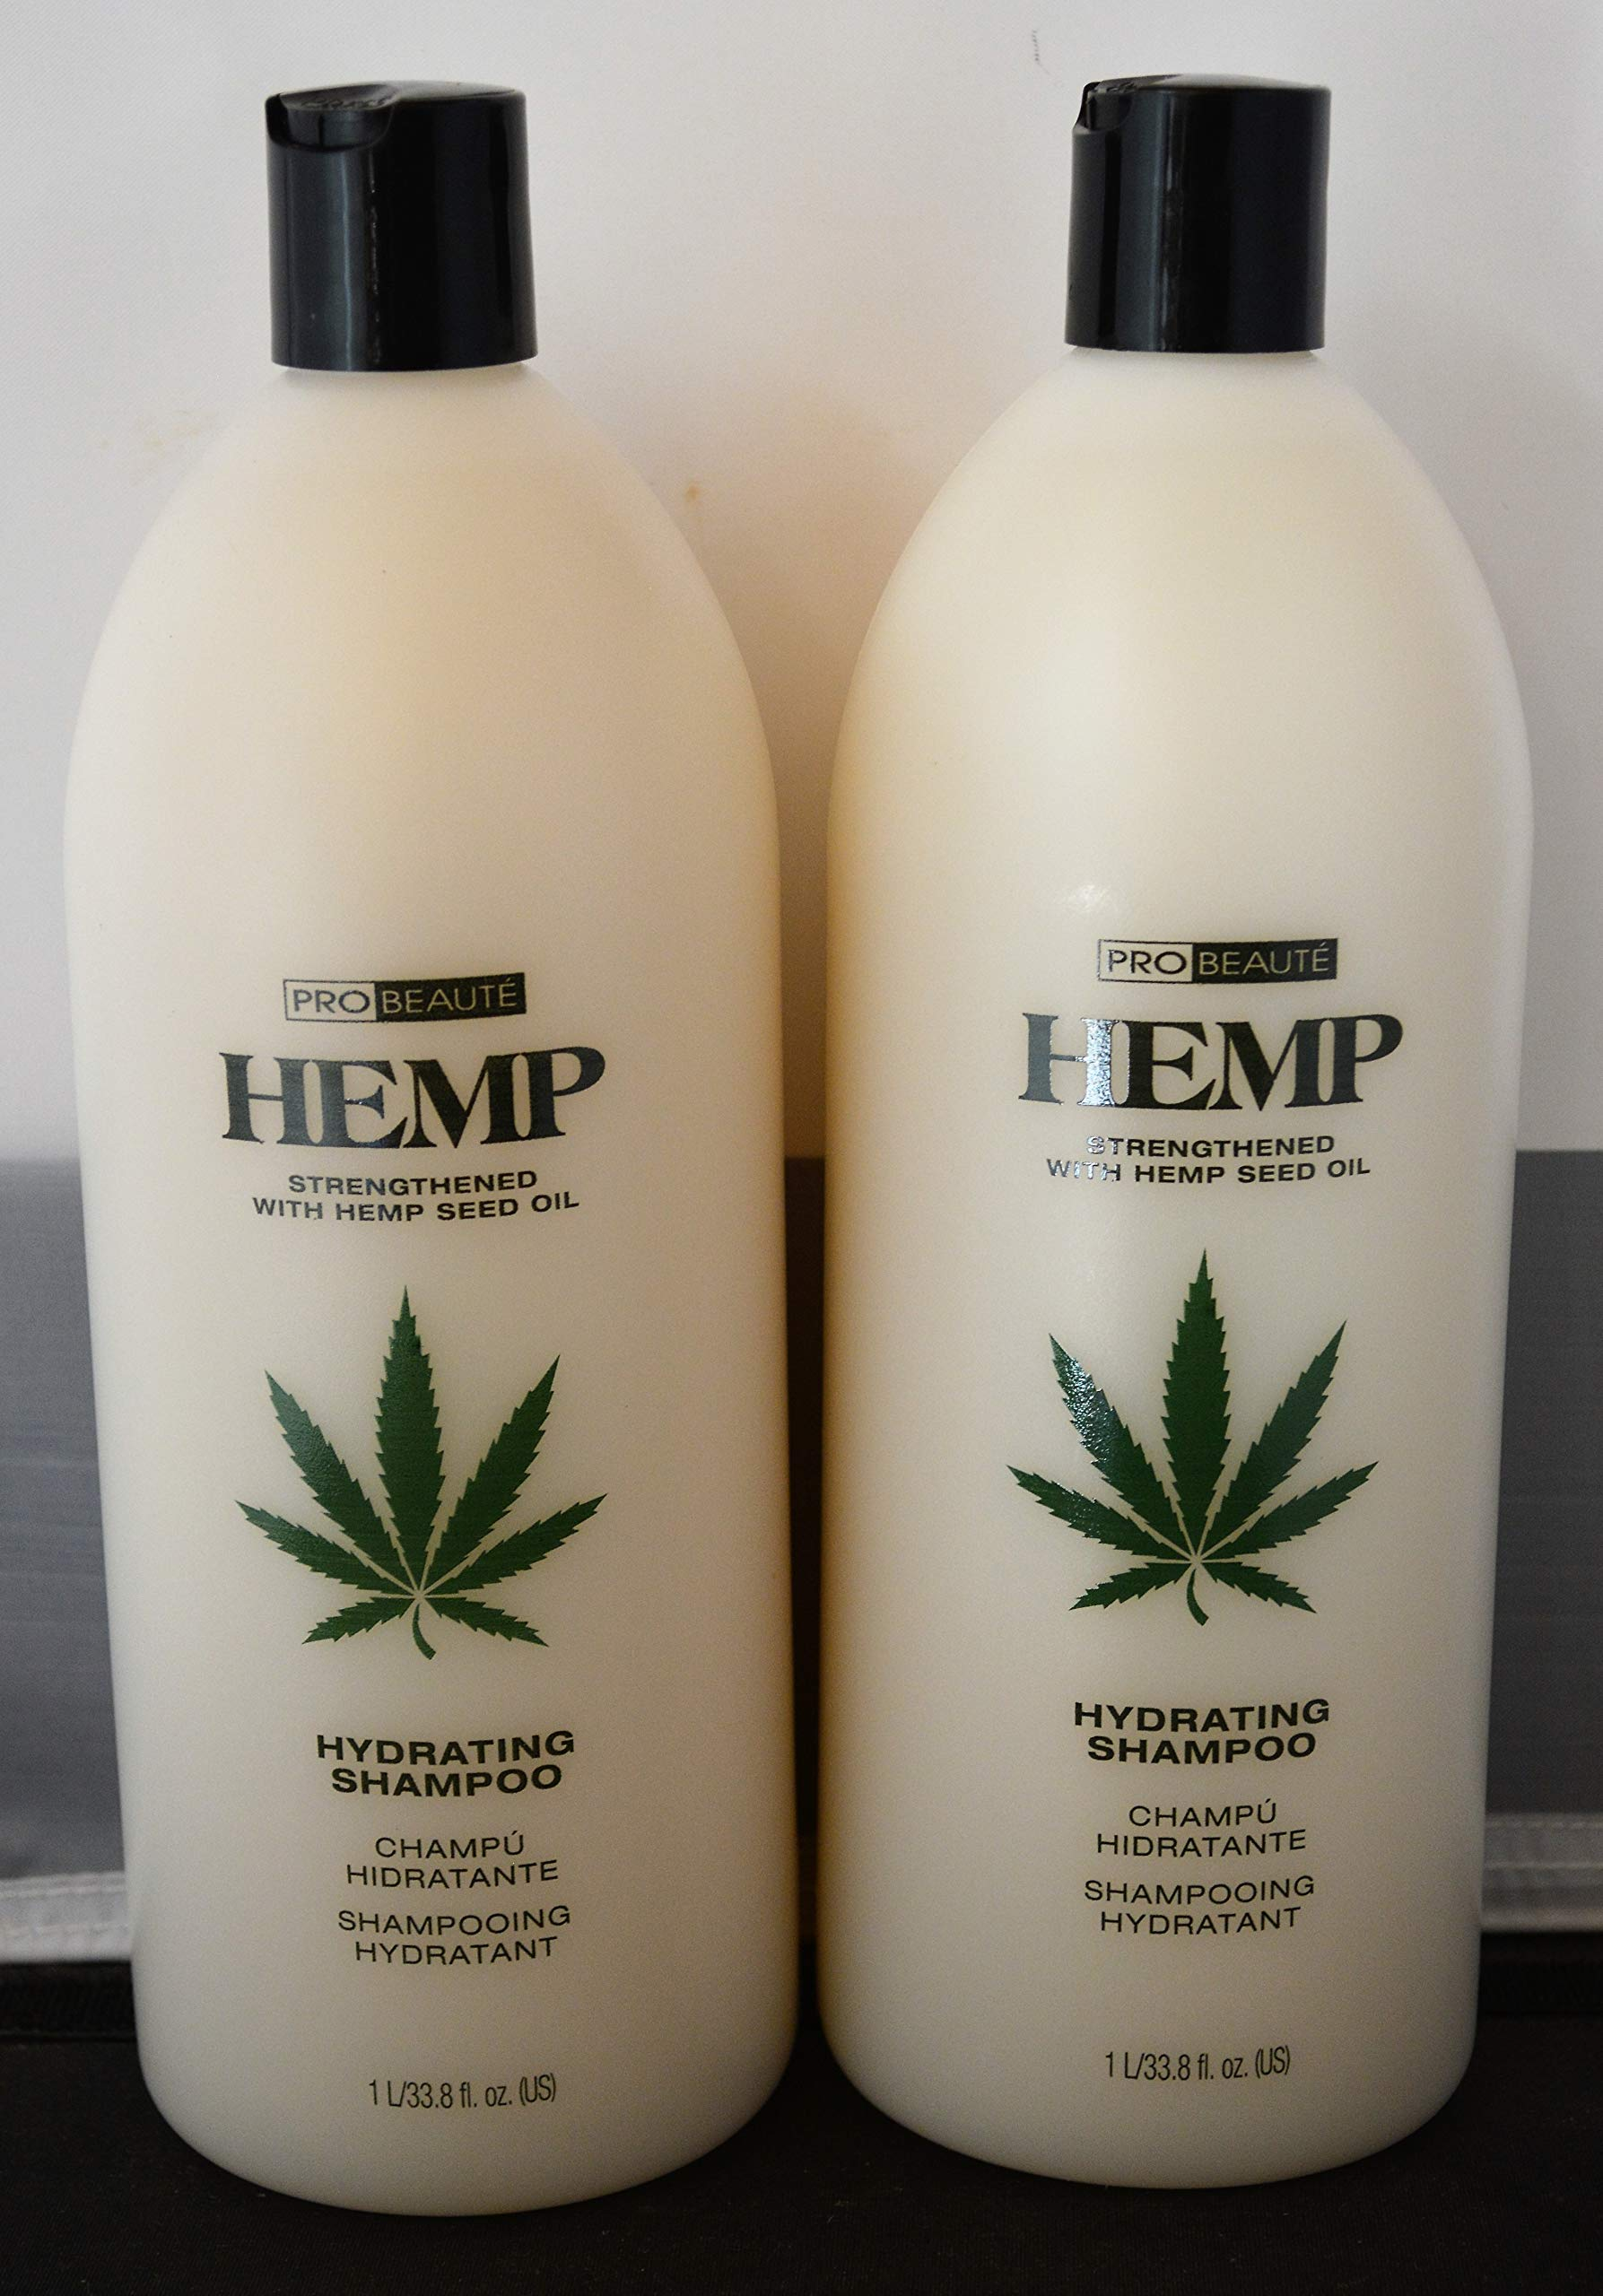 Hemp Hydrating Shampoo 33.8oz - Strengthened with Hemp Seed Oil (2 pack) by Generic